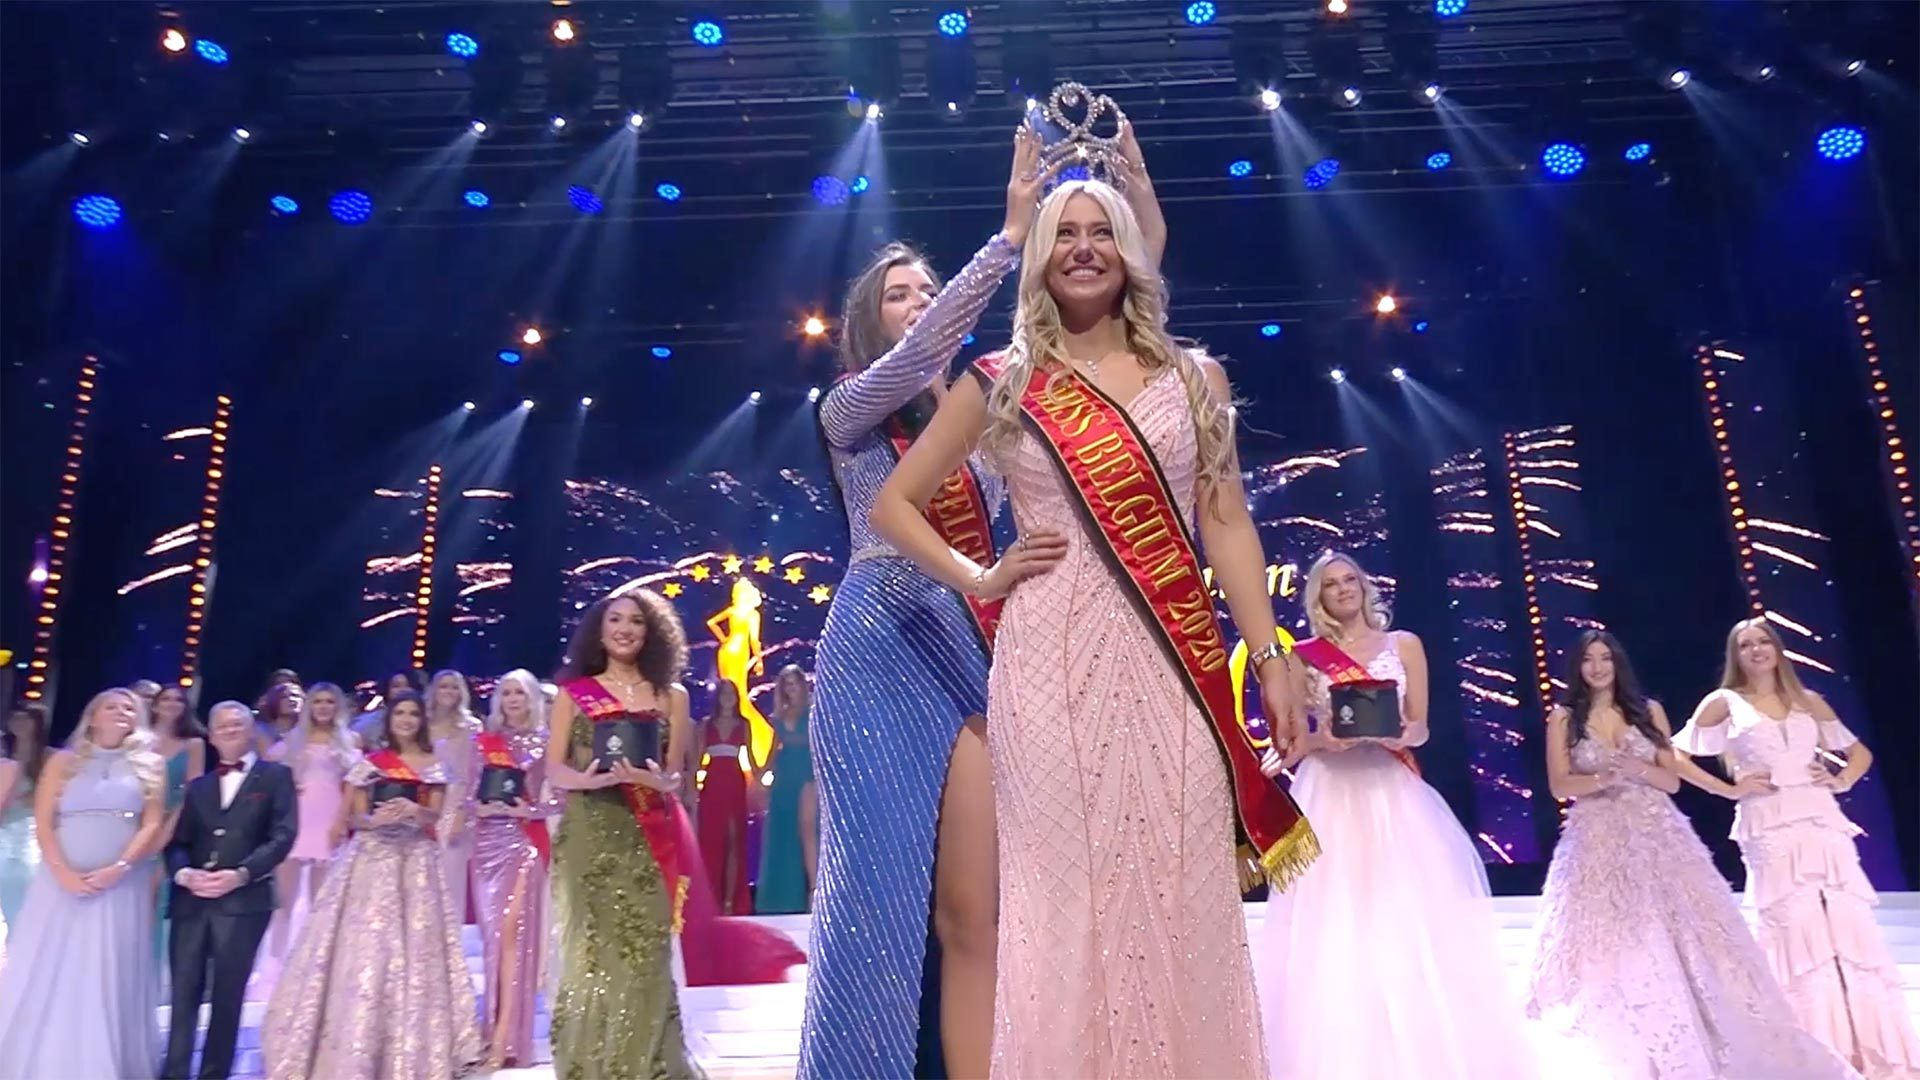 What we did broadcast miss belgium